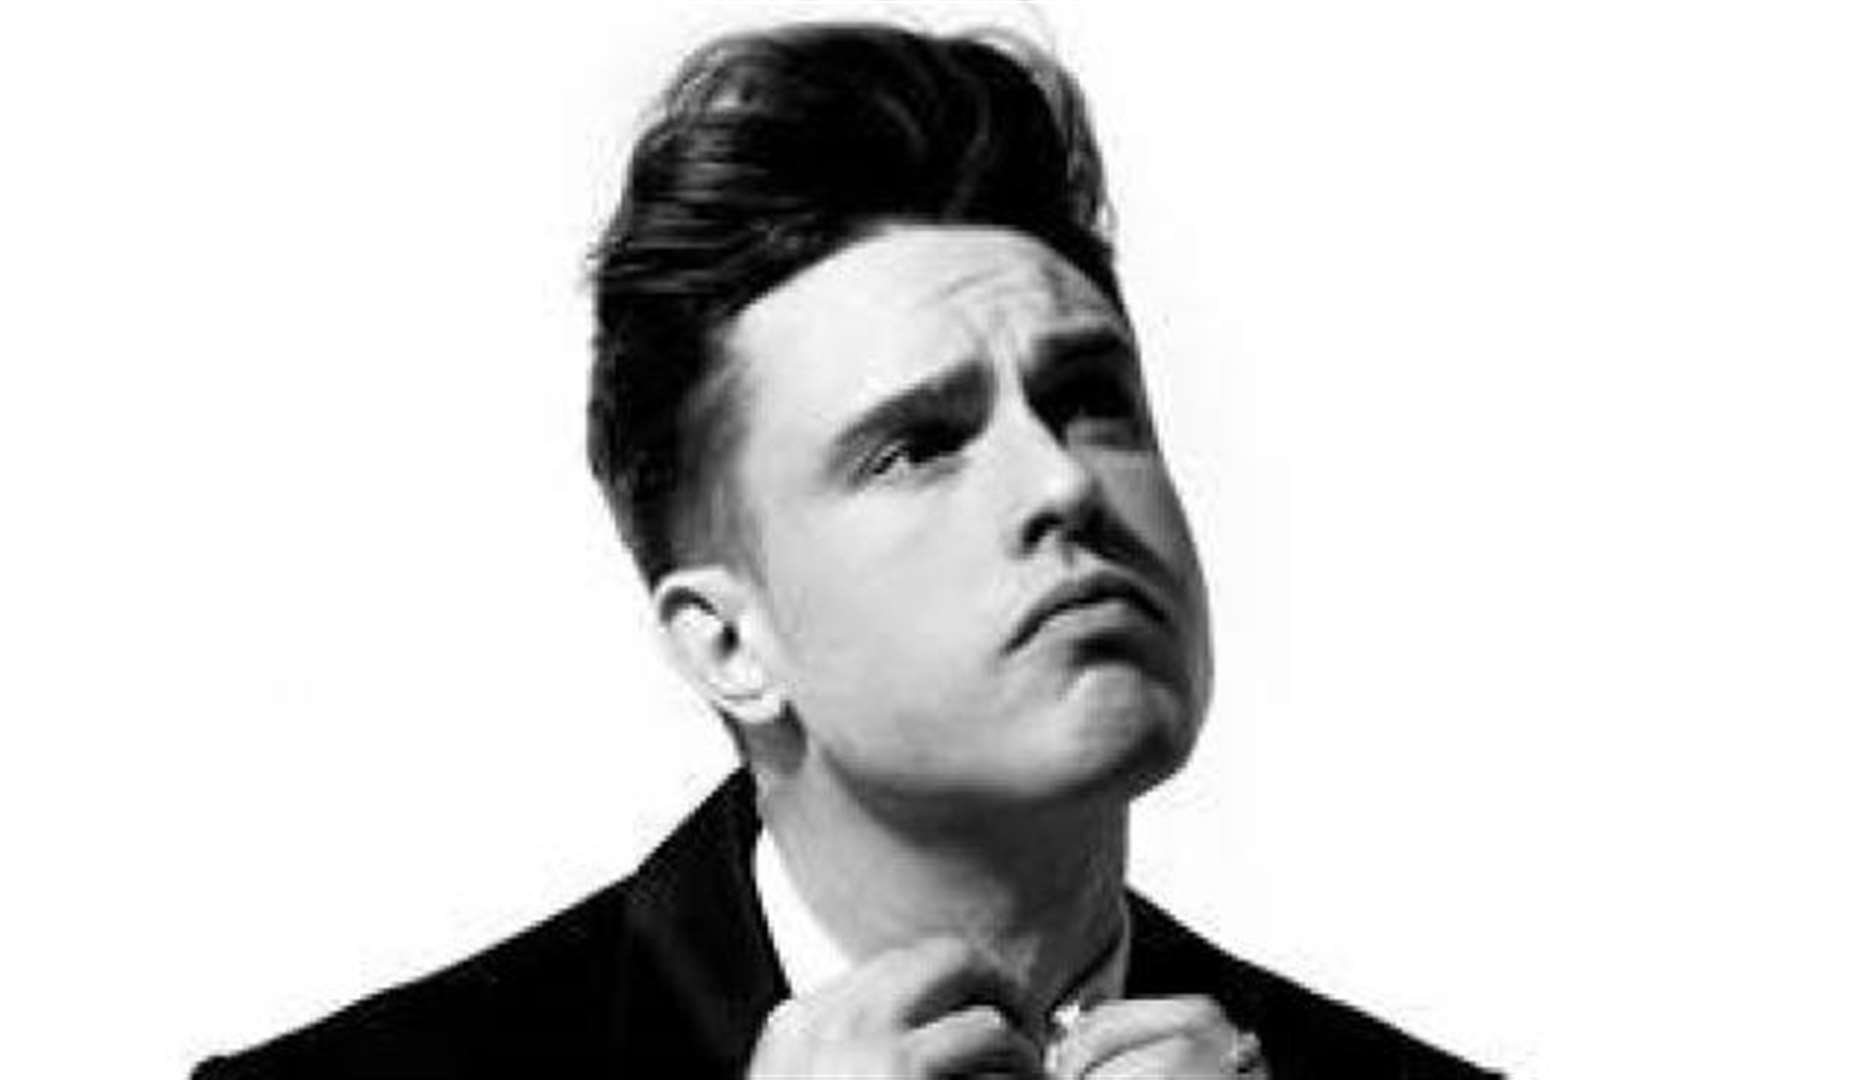 Ed Gamble to perform at Cambridge Junction this weekend